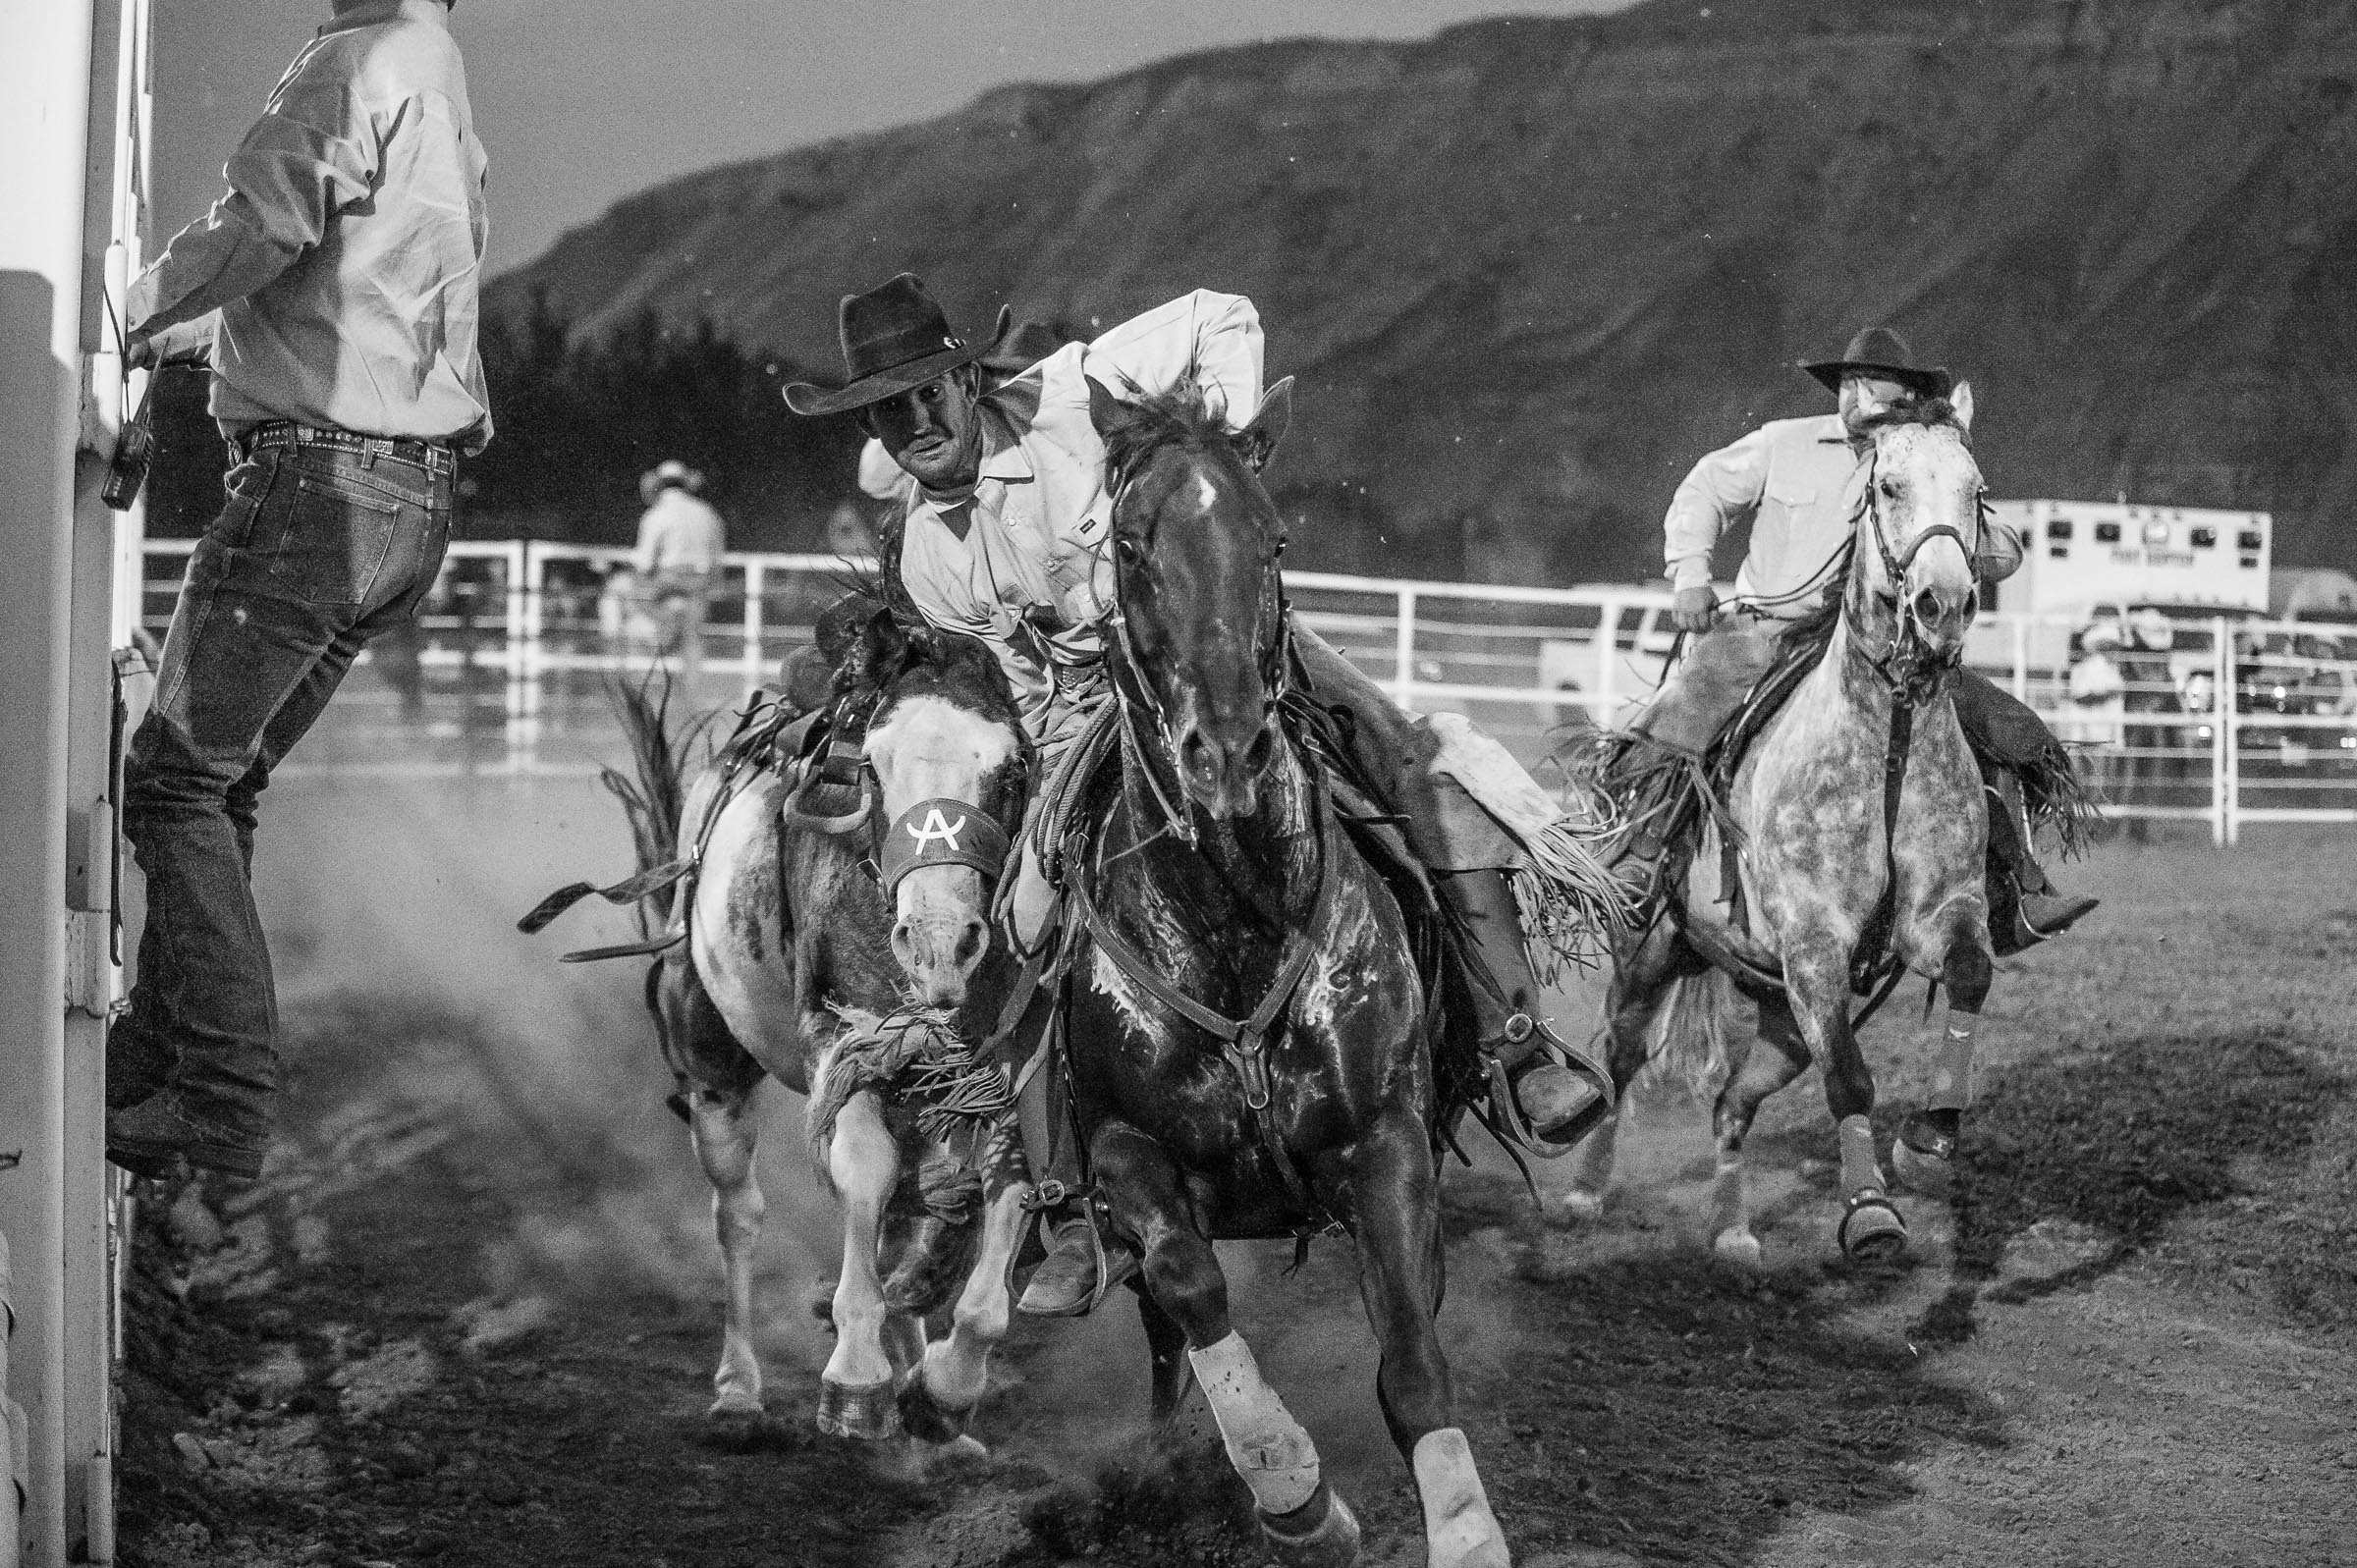 Pickup Men chasing down a bronc in the arena. © Tony Bynum